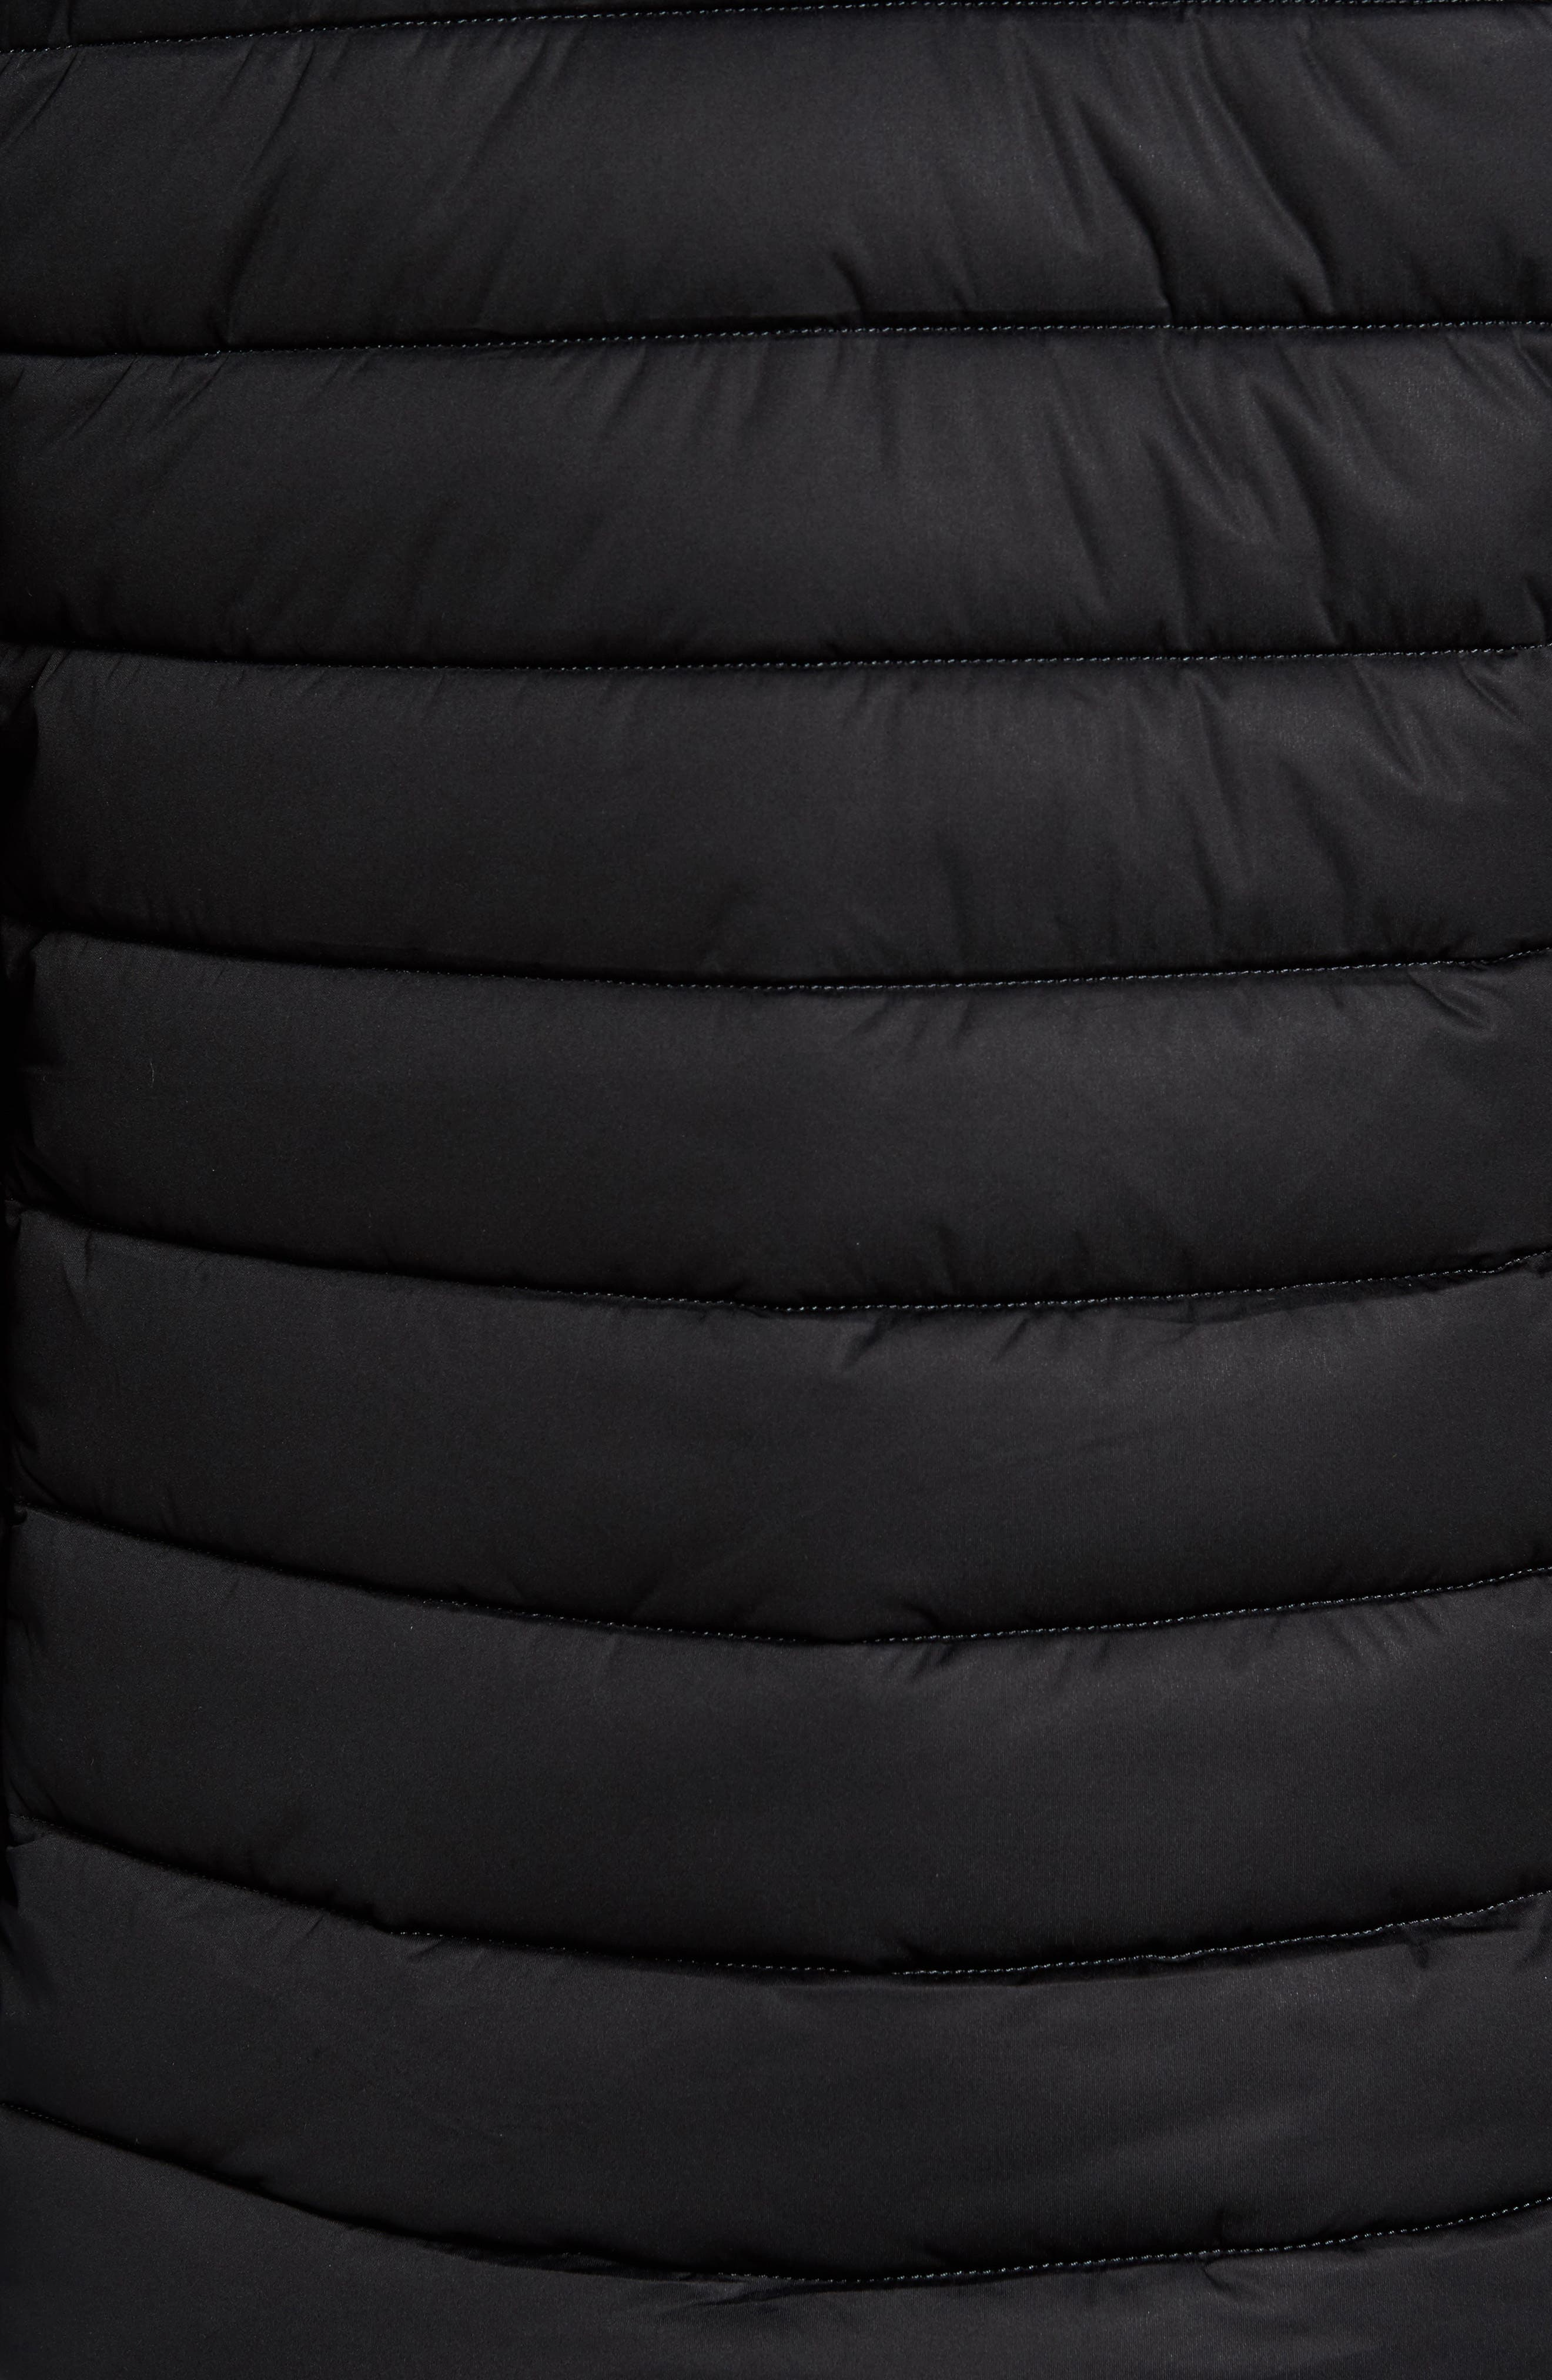 Hooded Water Resistant Puffer Jacket,                             Alternate thumbnail 6, color,                             001